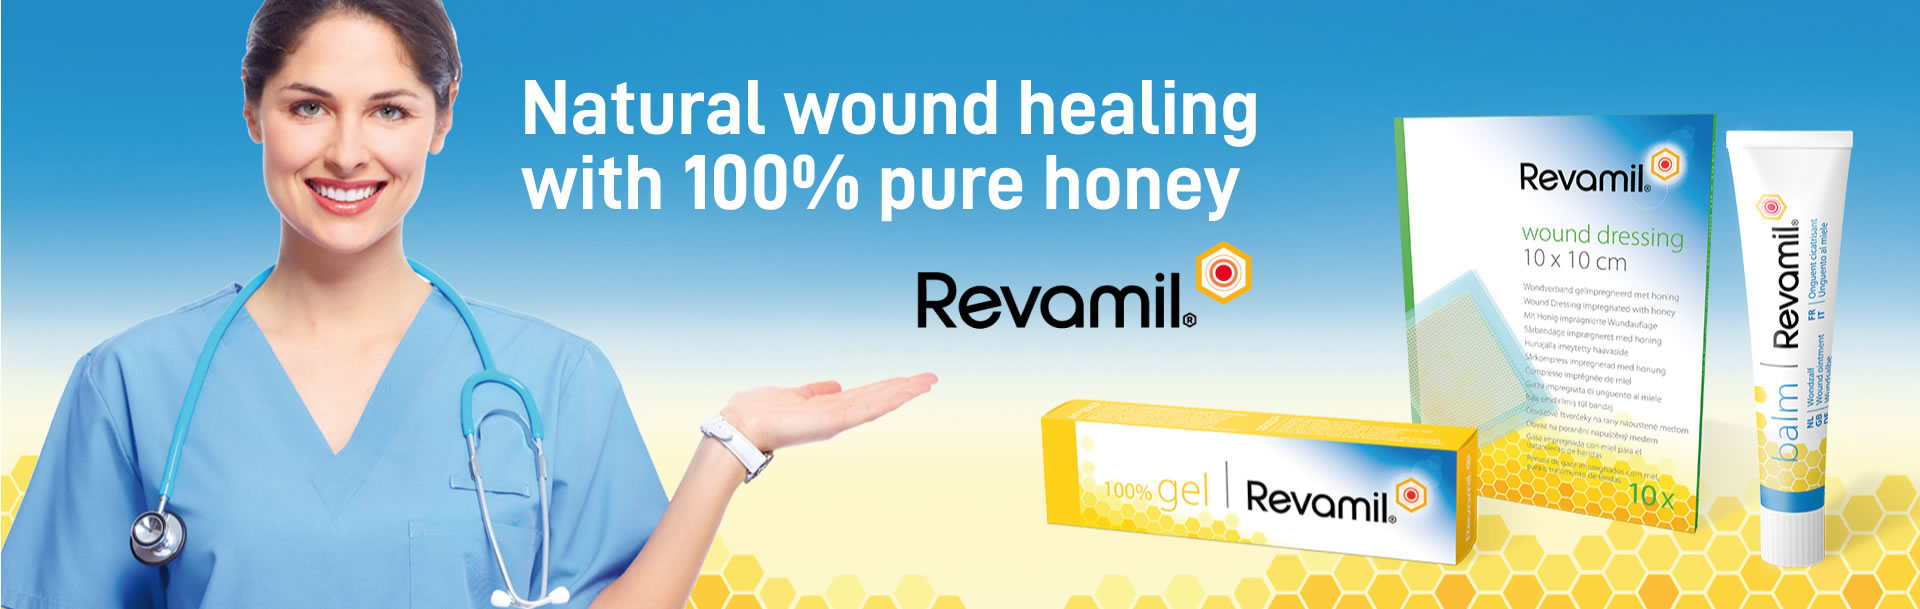 Revamil - Natural wound healing with 100% pure honey